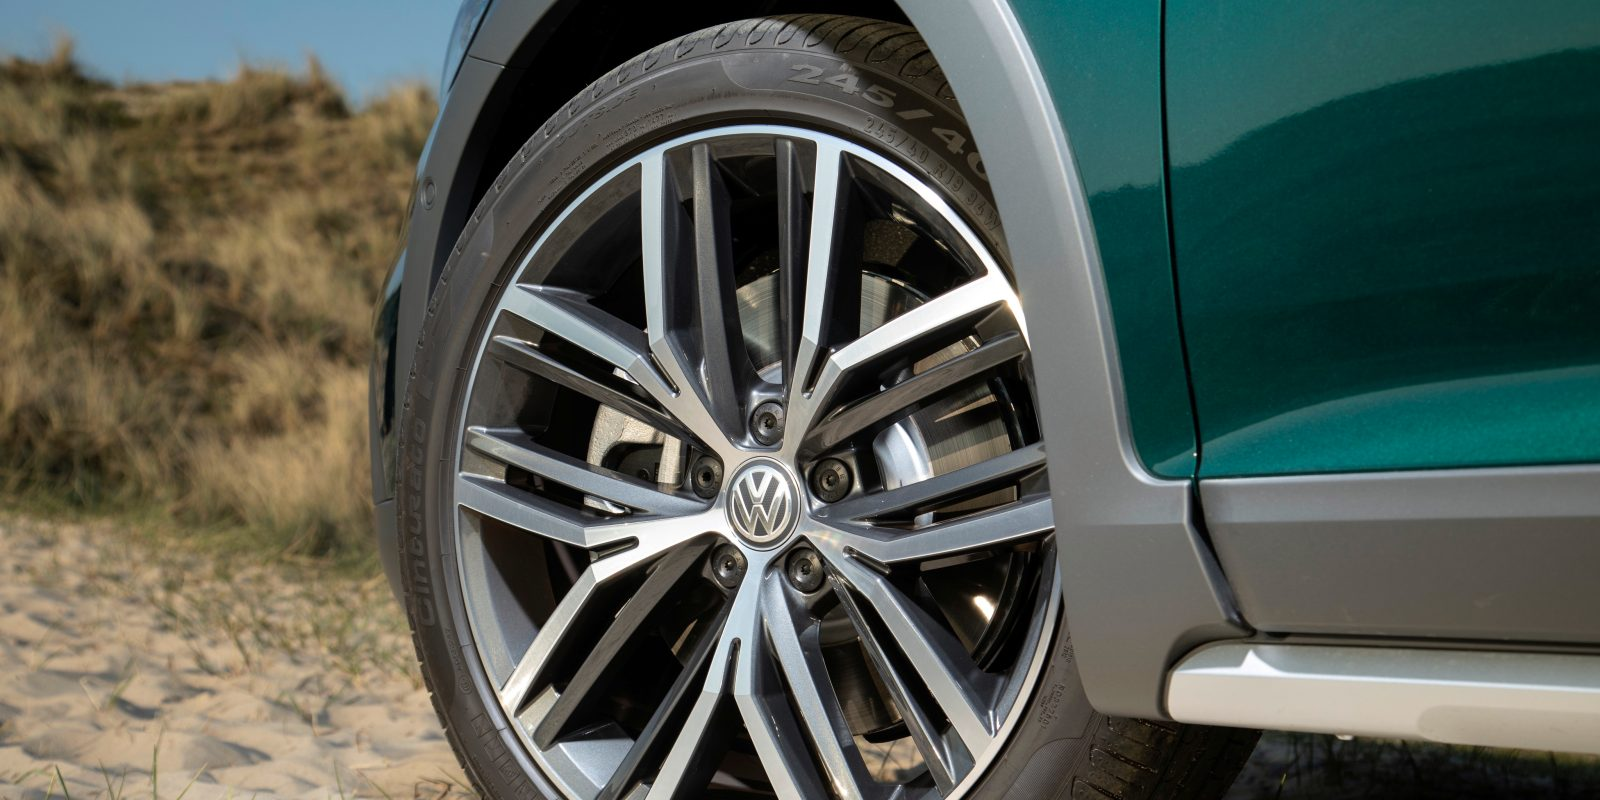 Self-driving swap? Volkswagen ends relationship with Aurora, signs still point to a deal with Argo